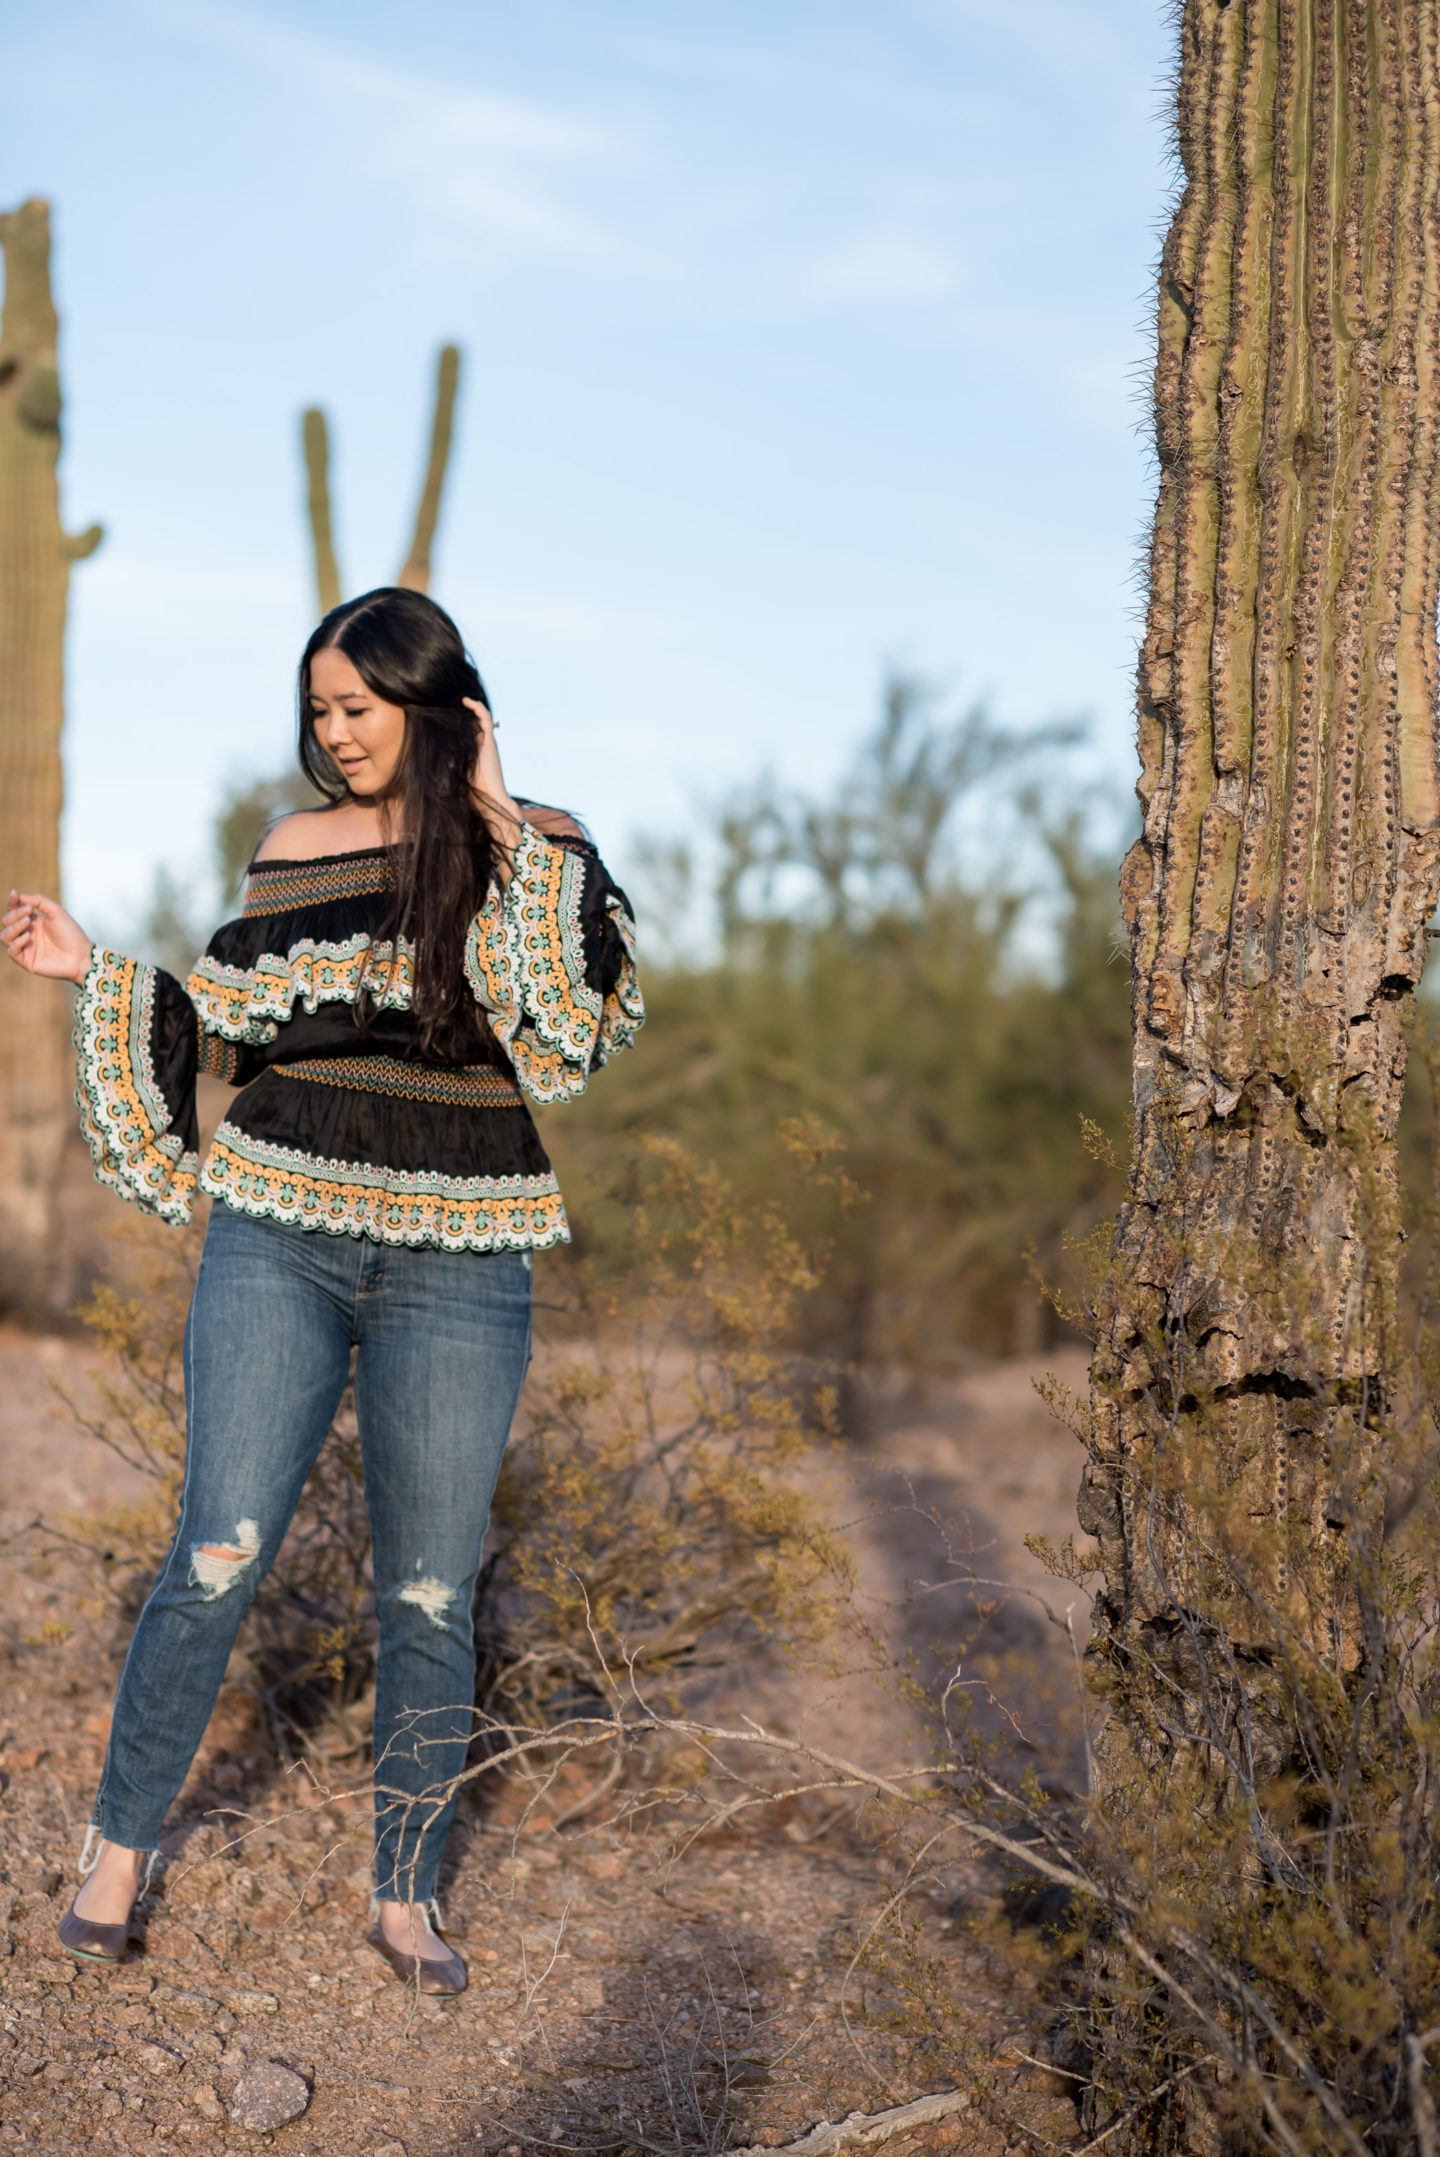 Dancing with Cacti